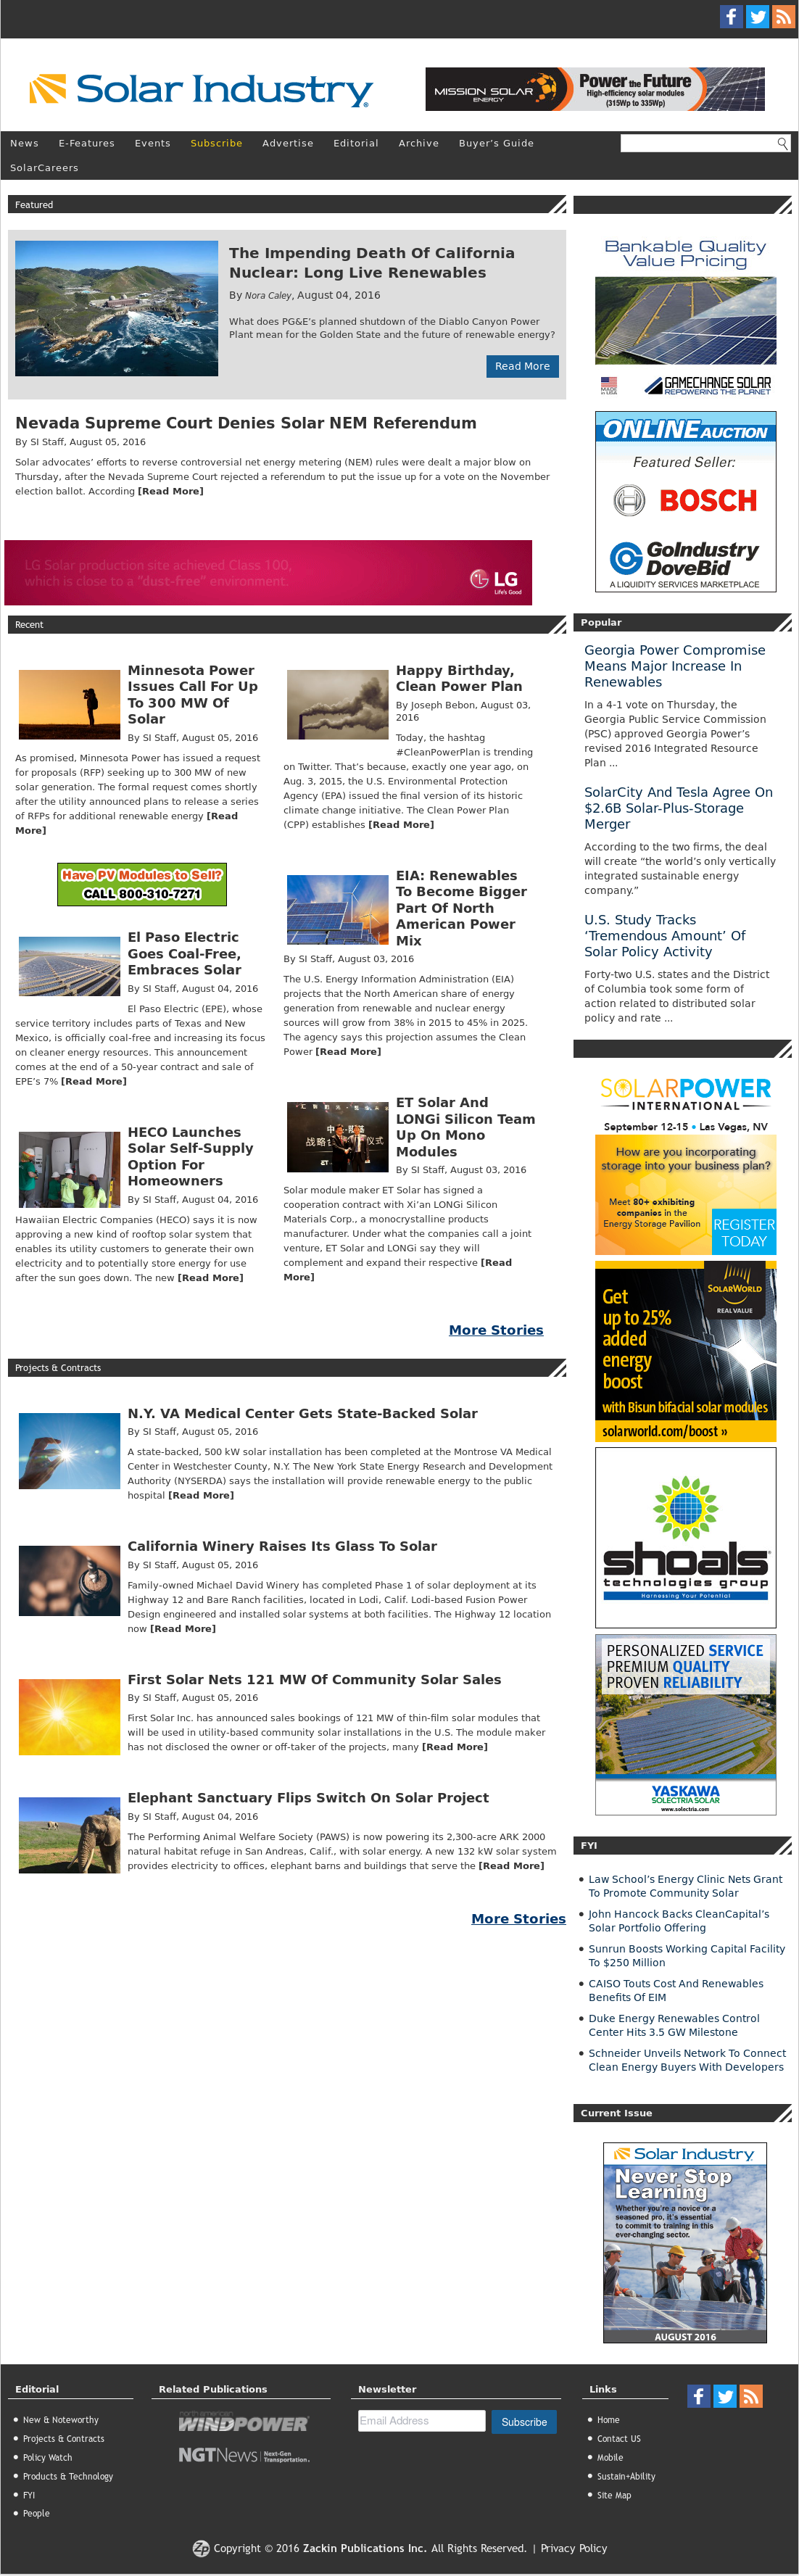 Solar Industry Magazine Competitors, Revenue and Employees - Owler